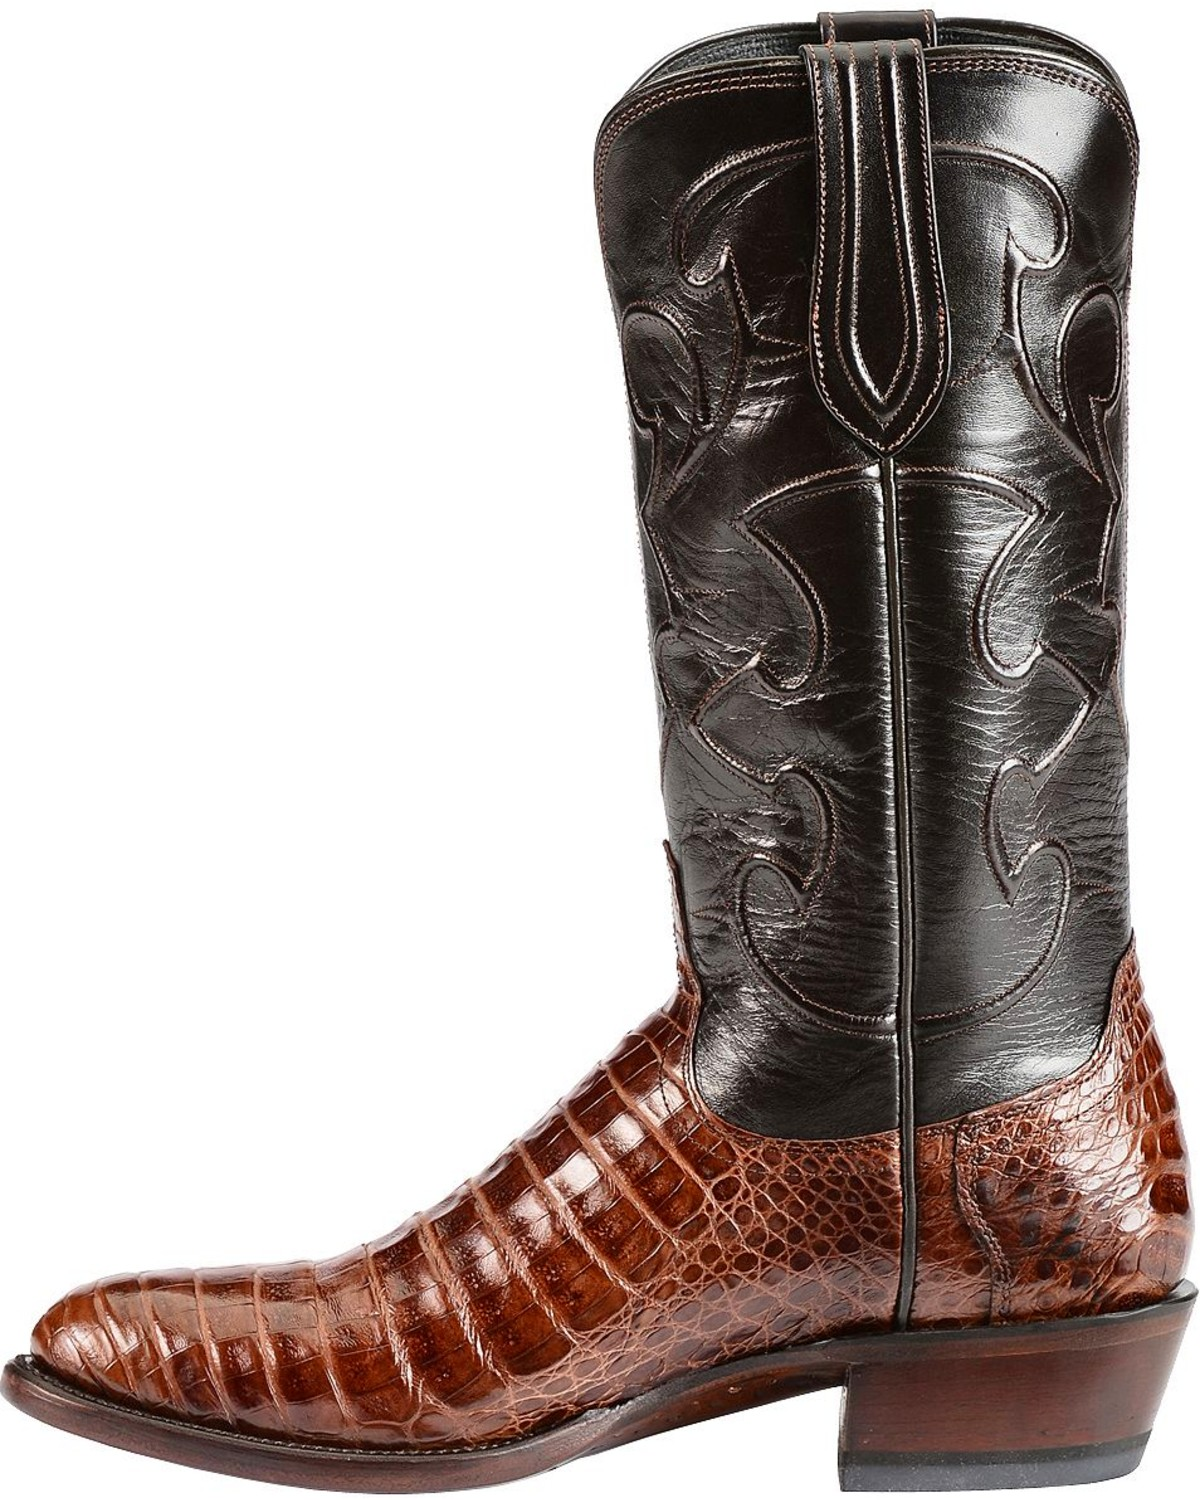 Lucchese Handcrafted 1883 Caiman Belly Cowboy Boots